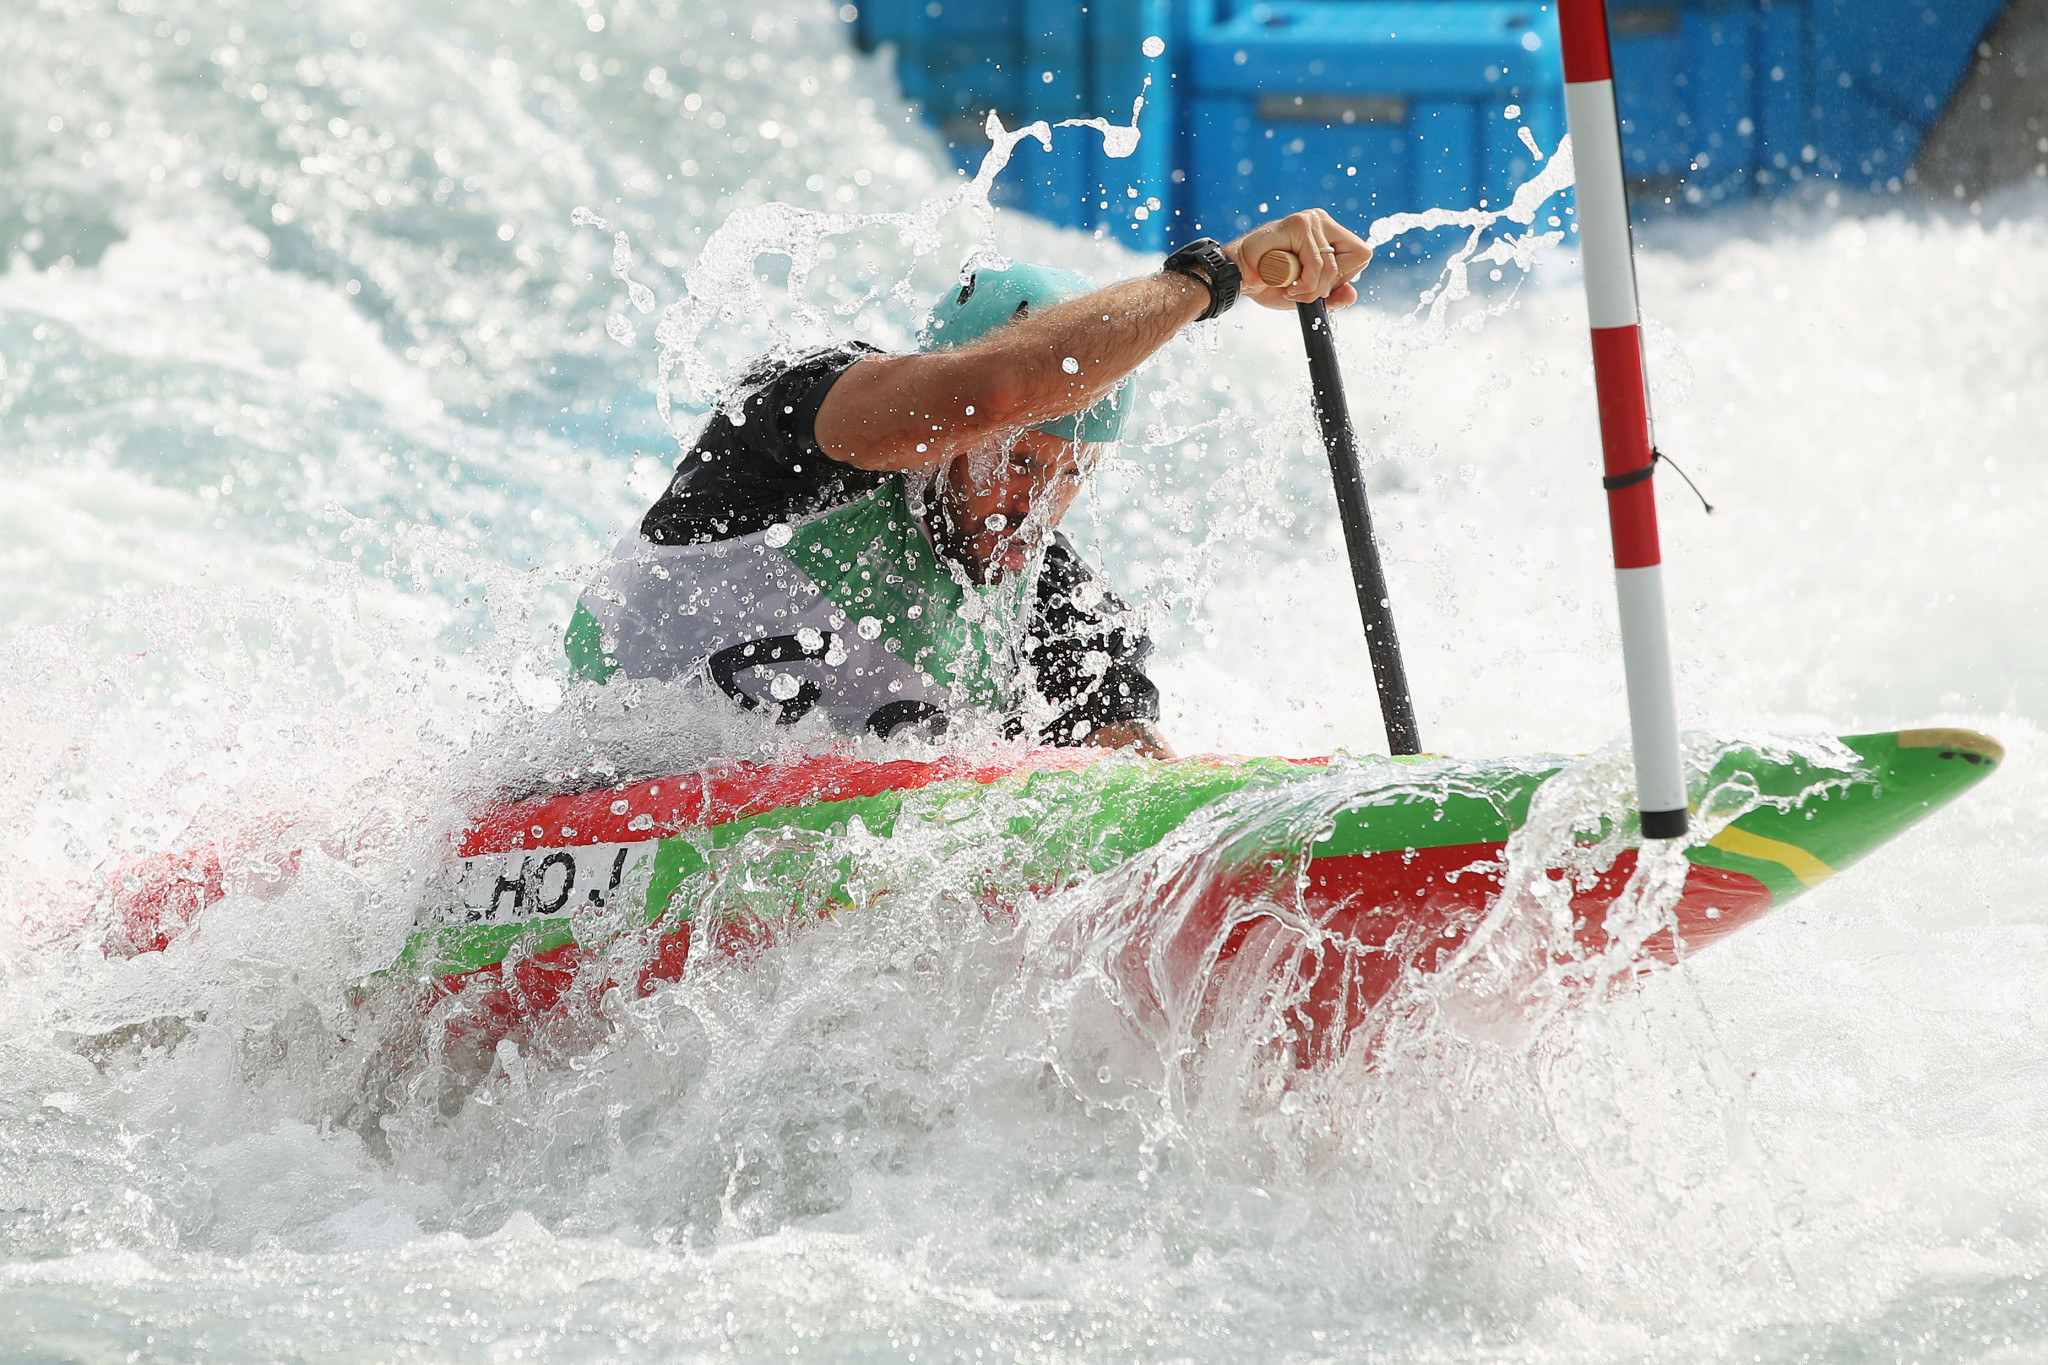 Mexico to make Olympic canoe slalom debut as ICF confirms Tokyo 2020 allocations